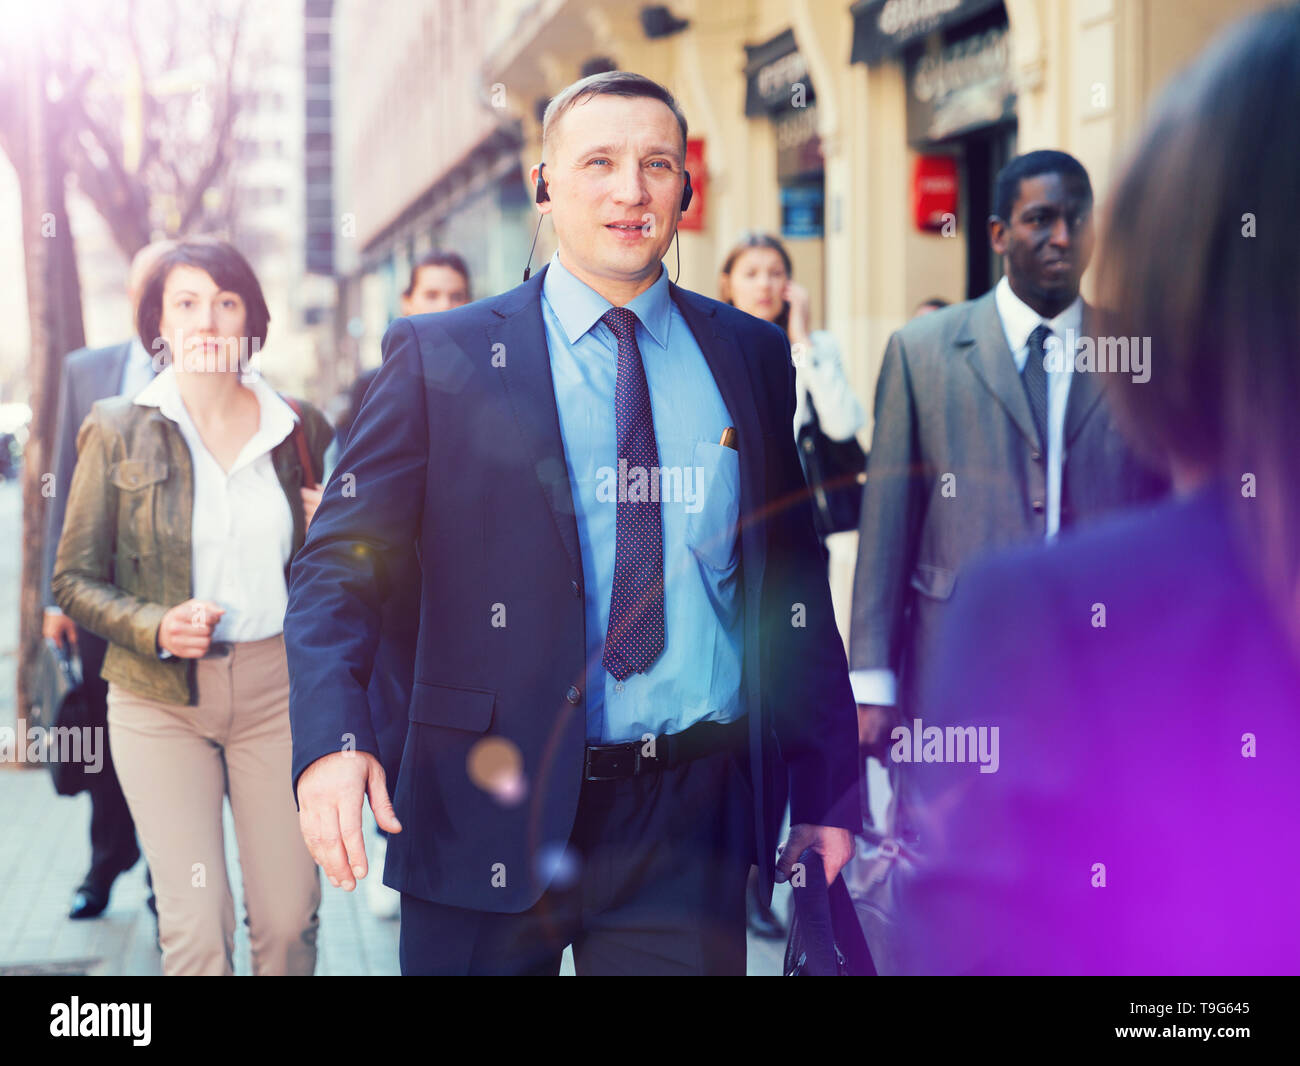 Confident businessman in formal suit walking on city street to office at rush hour - Stock Image